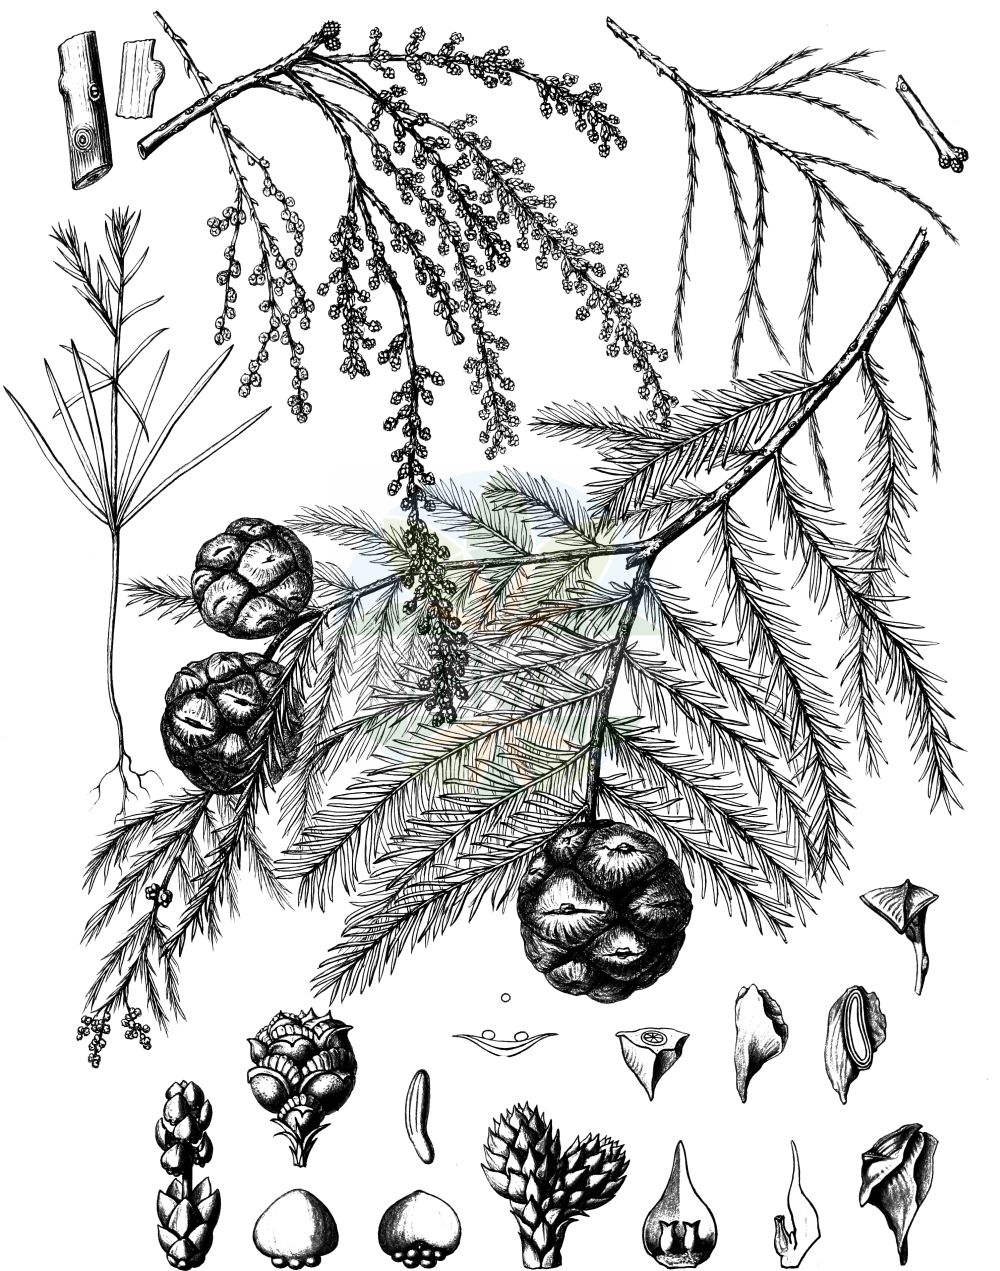 Historische Abbildung von Taxodium distichum (Echte Sumpfzypresse - Swamp Cypress). Das Bild zeigt Blatt, Bluete, Frucht und Same. ---- Historical Drawing of Taxodium distichum (Echte Sumpfzypresse - Swamp Cypress).The image is showing leaf, flower, fruit and seed.(Taxodium distichum,Echte Sumpfzypresse,Swamp Cypress,Cupressus disticha,Taxodium distichum,Echte Sumpfzypresse,Swamp Cypress,American Bald Cypress,Pond Cypress,Bald Cypress,Gulf Cypress,Red Cypress,Southern Cypress,Yellow Cypress,Taxodium,Sumpfzypresse,Bald Cypress,Cupressaceae,Zypressengewaechse,Cypress family,Blatt,Bluete,Frucht,Same,leaf,flower,fruit,seed,Sargent (1898-1902))